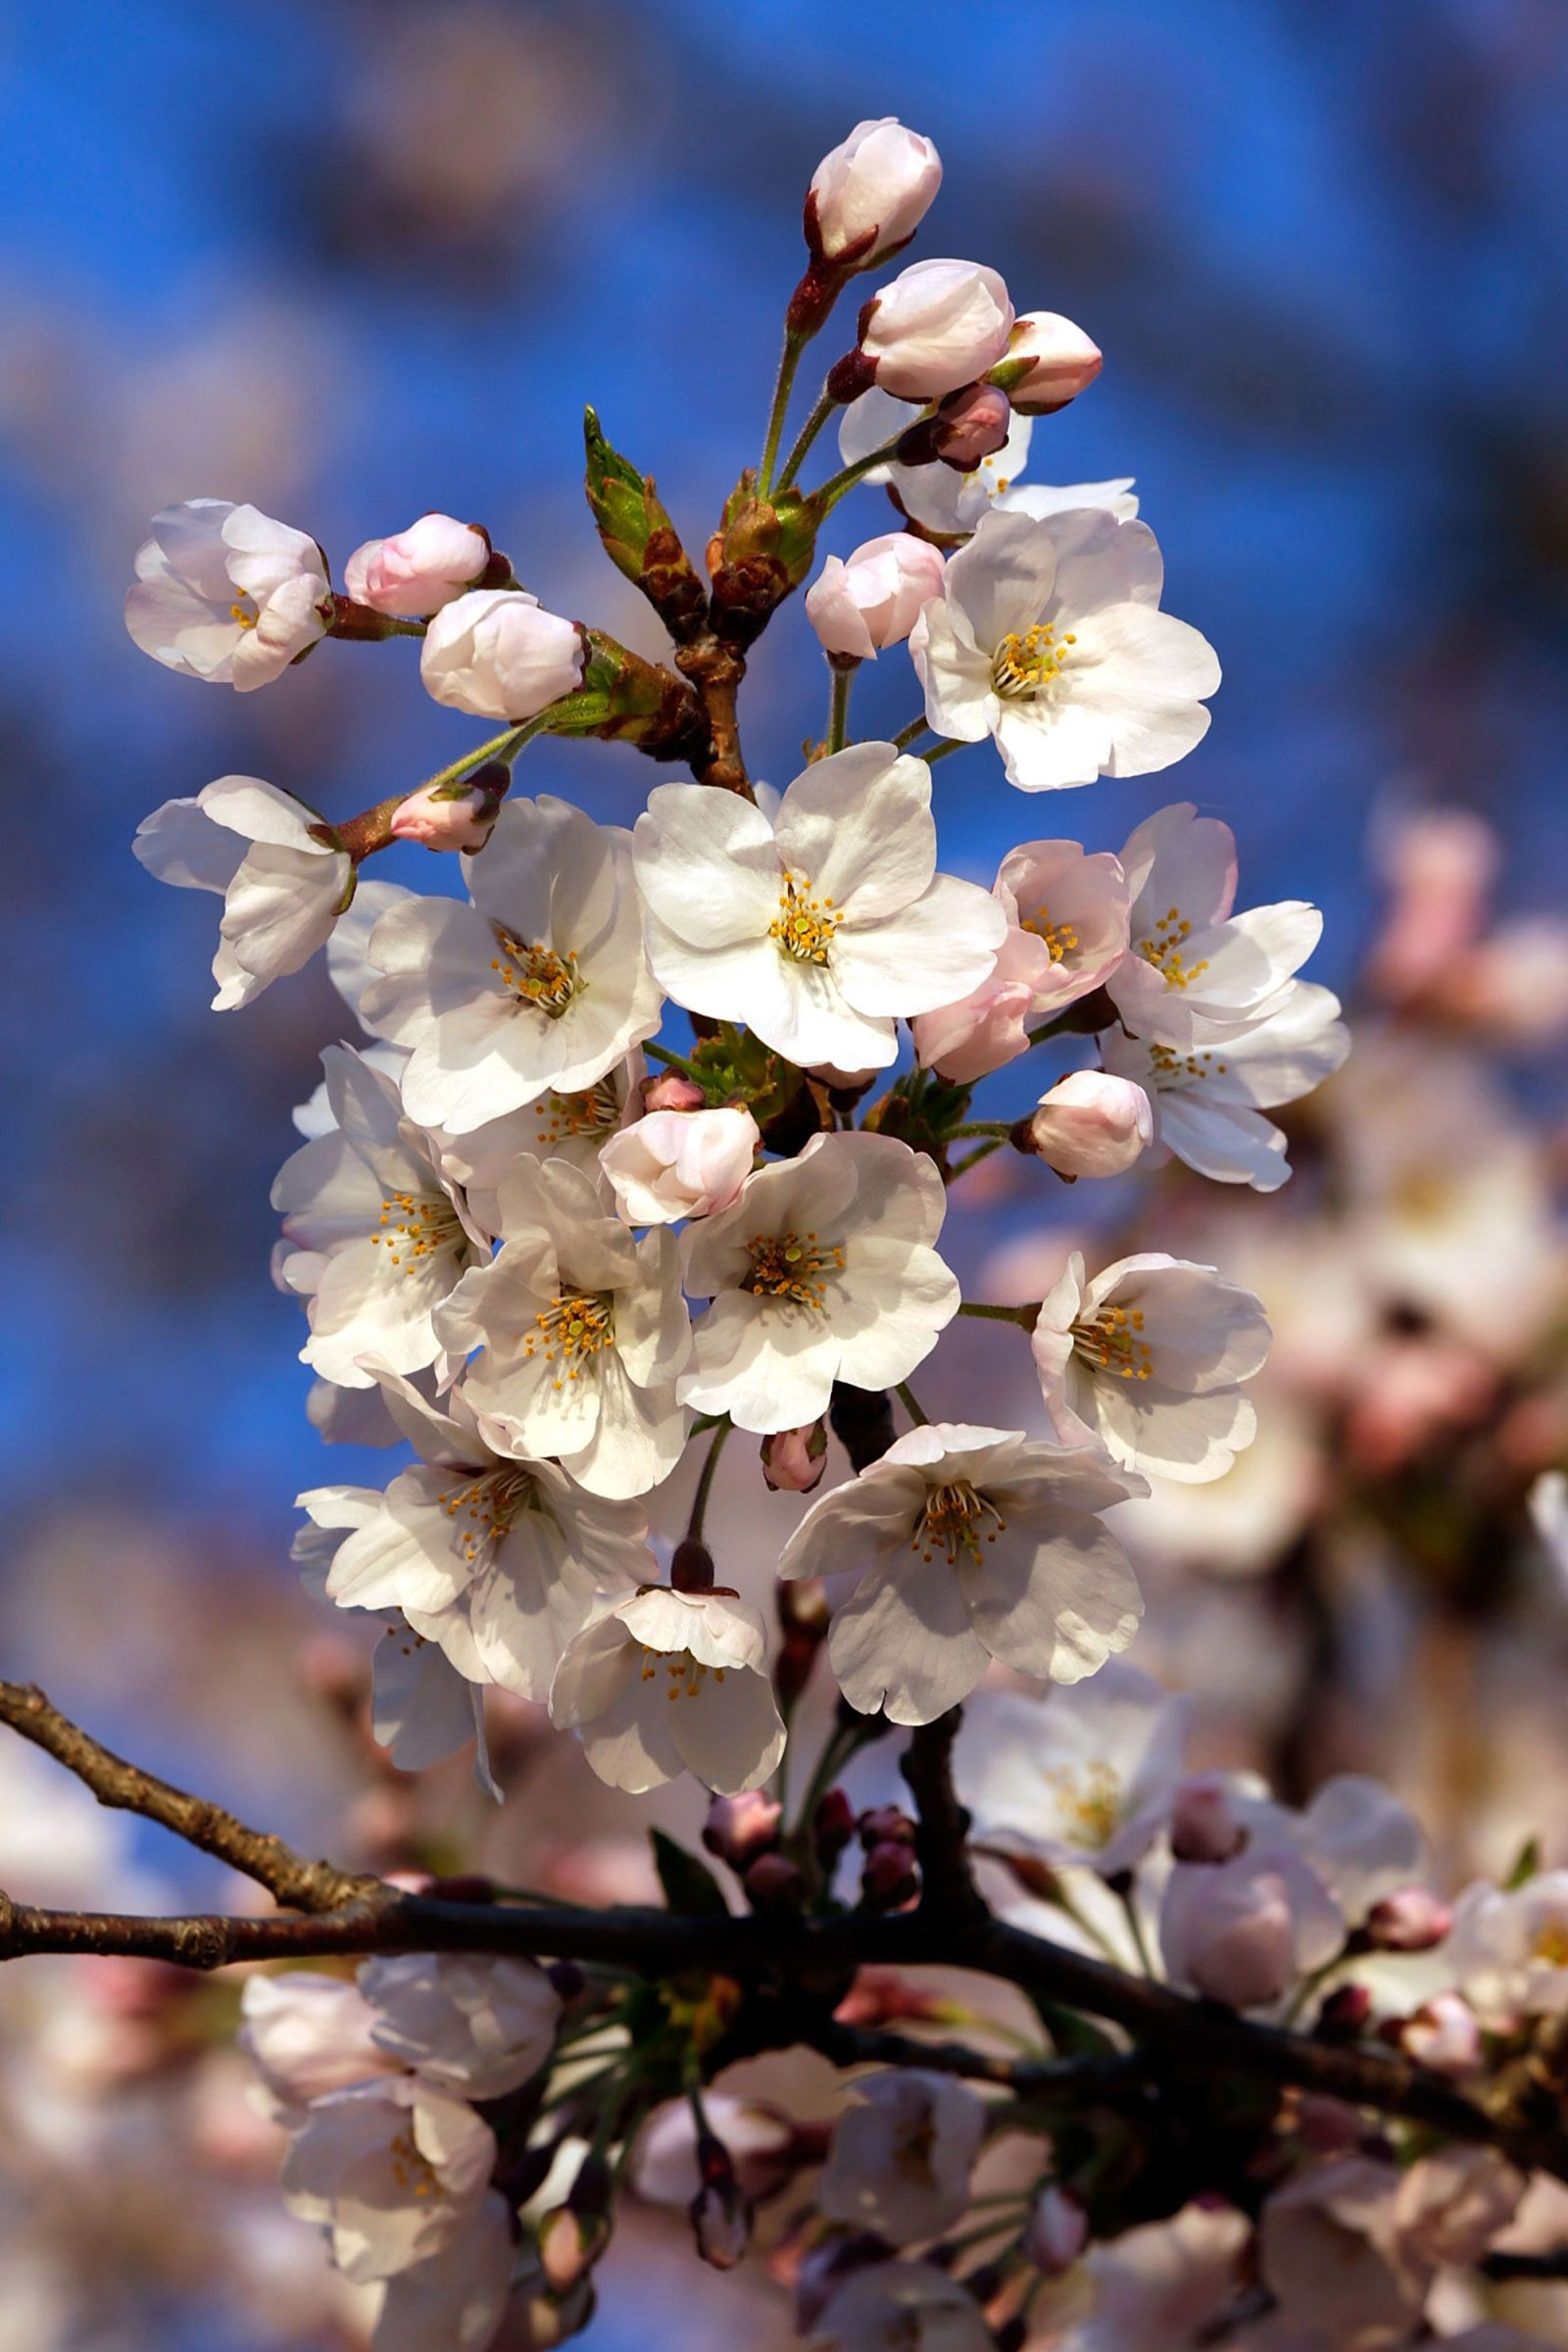 It S Officially Cherry Blossom Season In Washington D C Bloom Where Youre Planted Cherry Blossom Season Cherry Blossom Festival